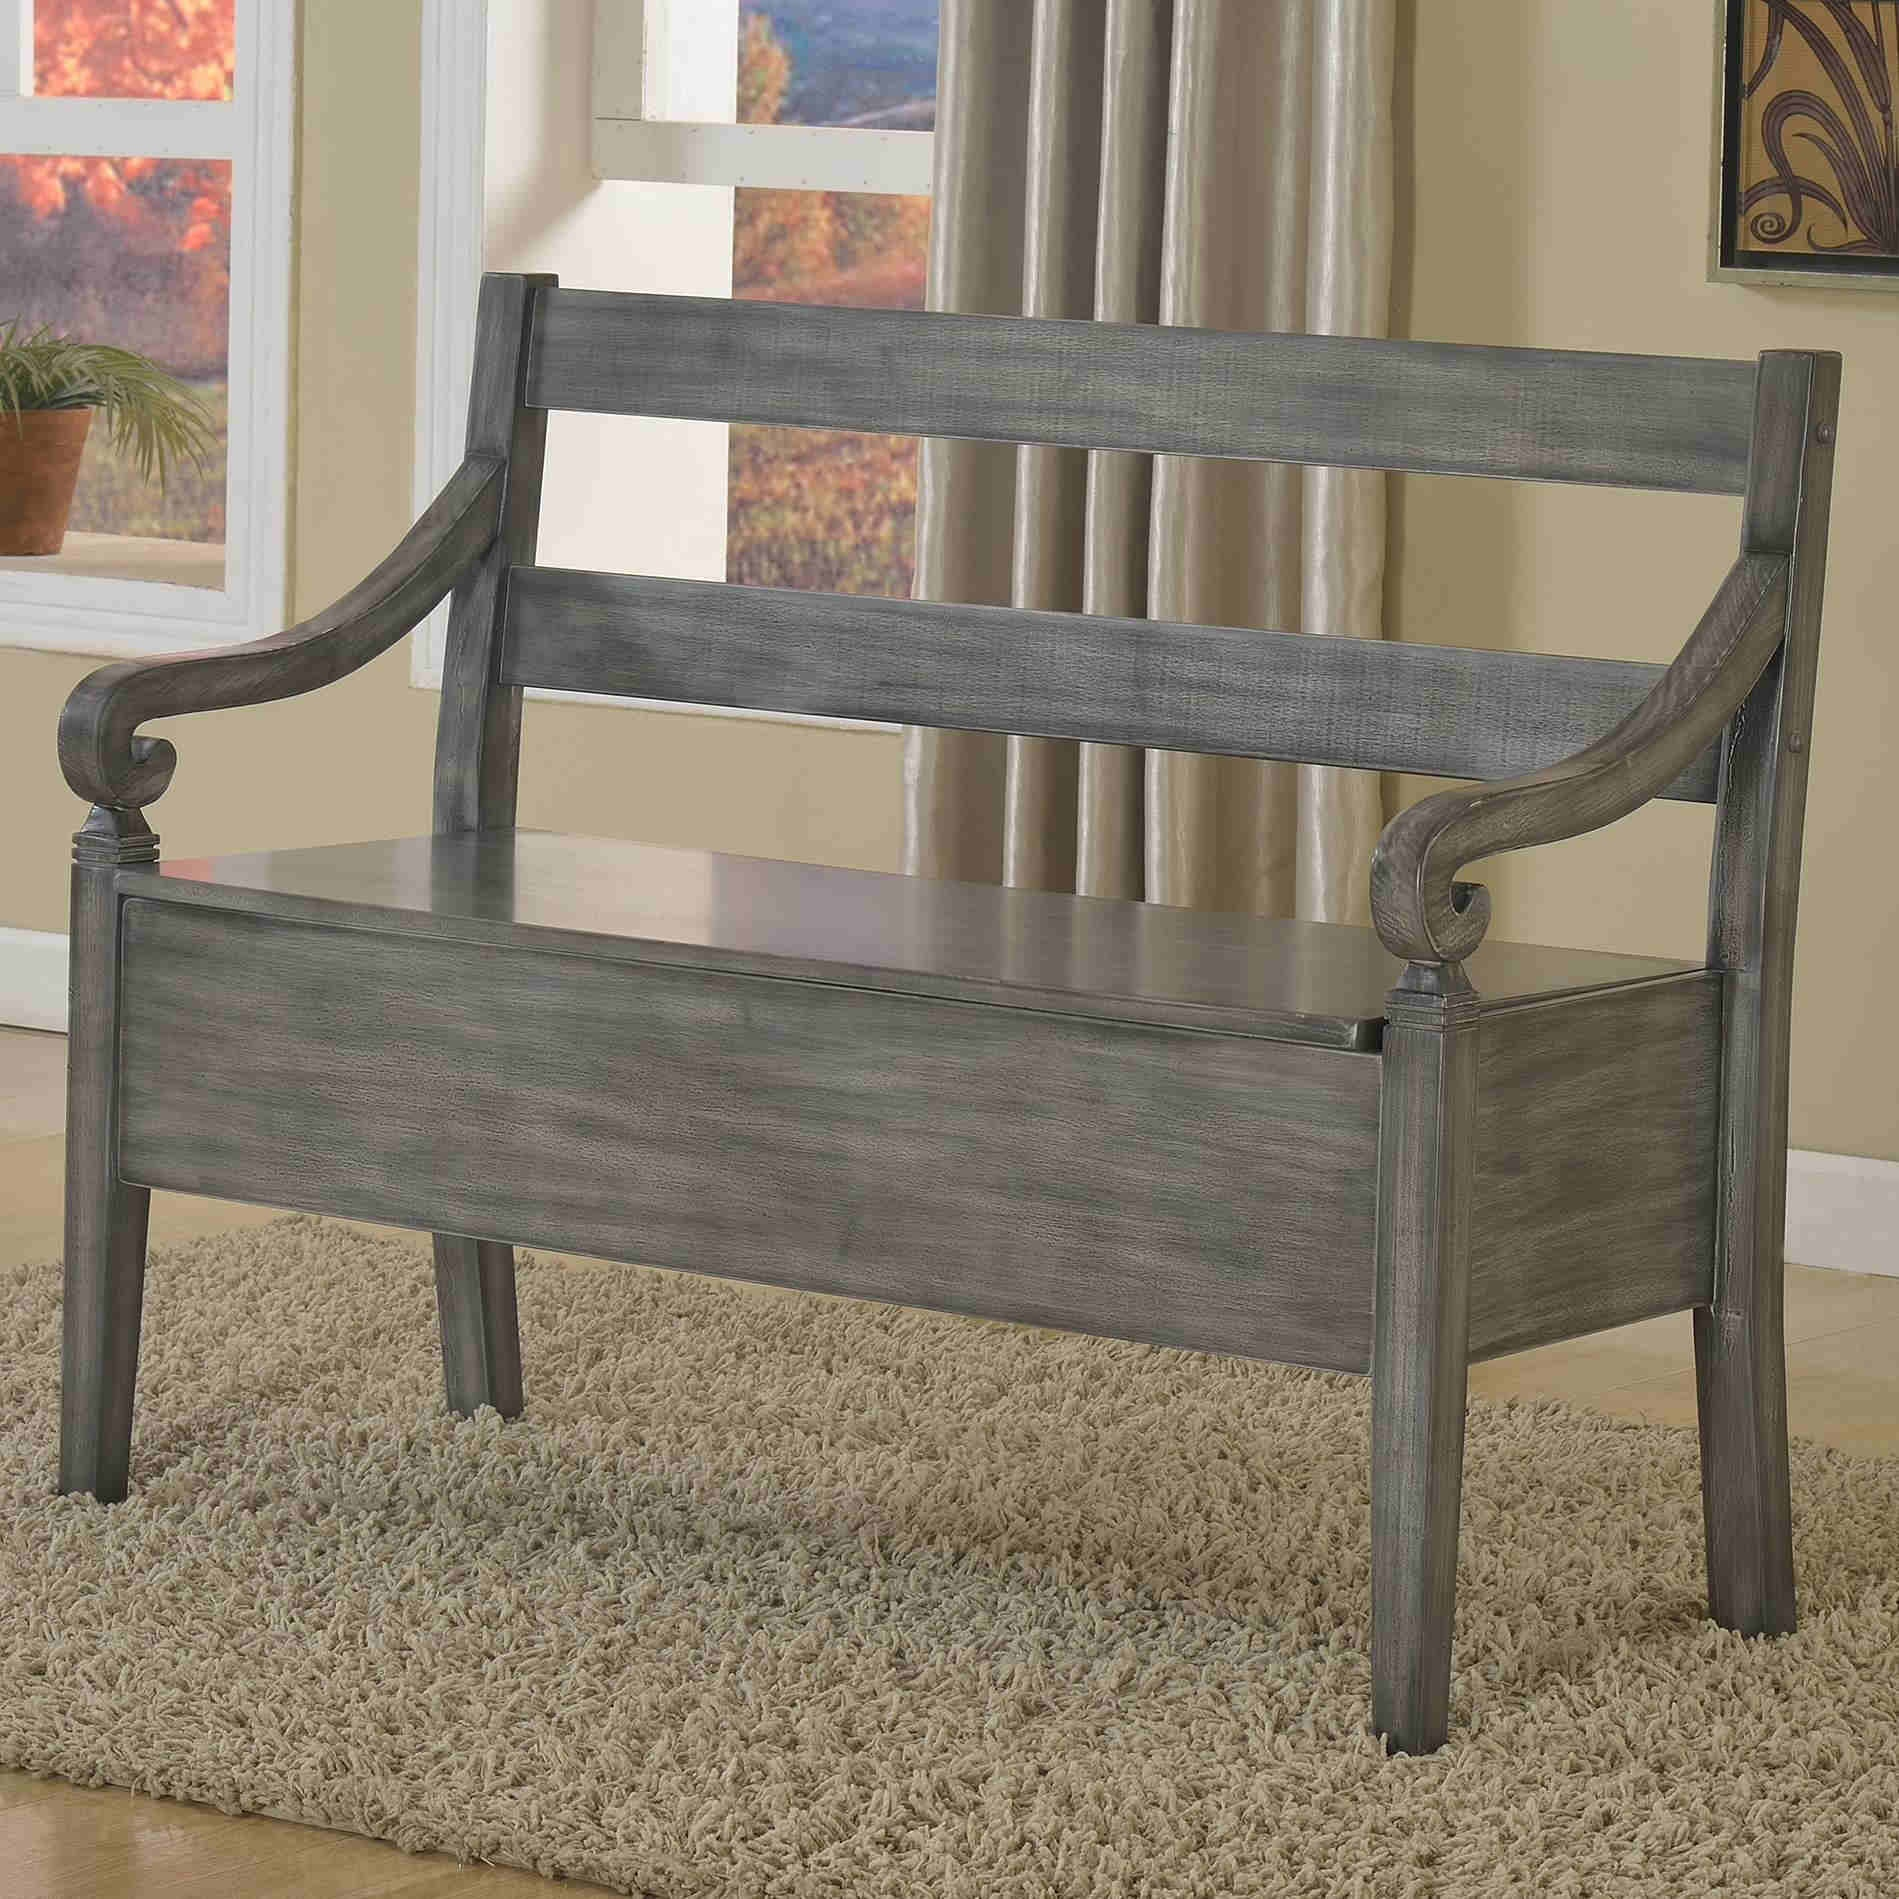 4183-Bench-GY